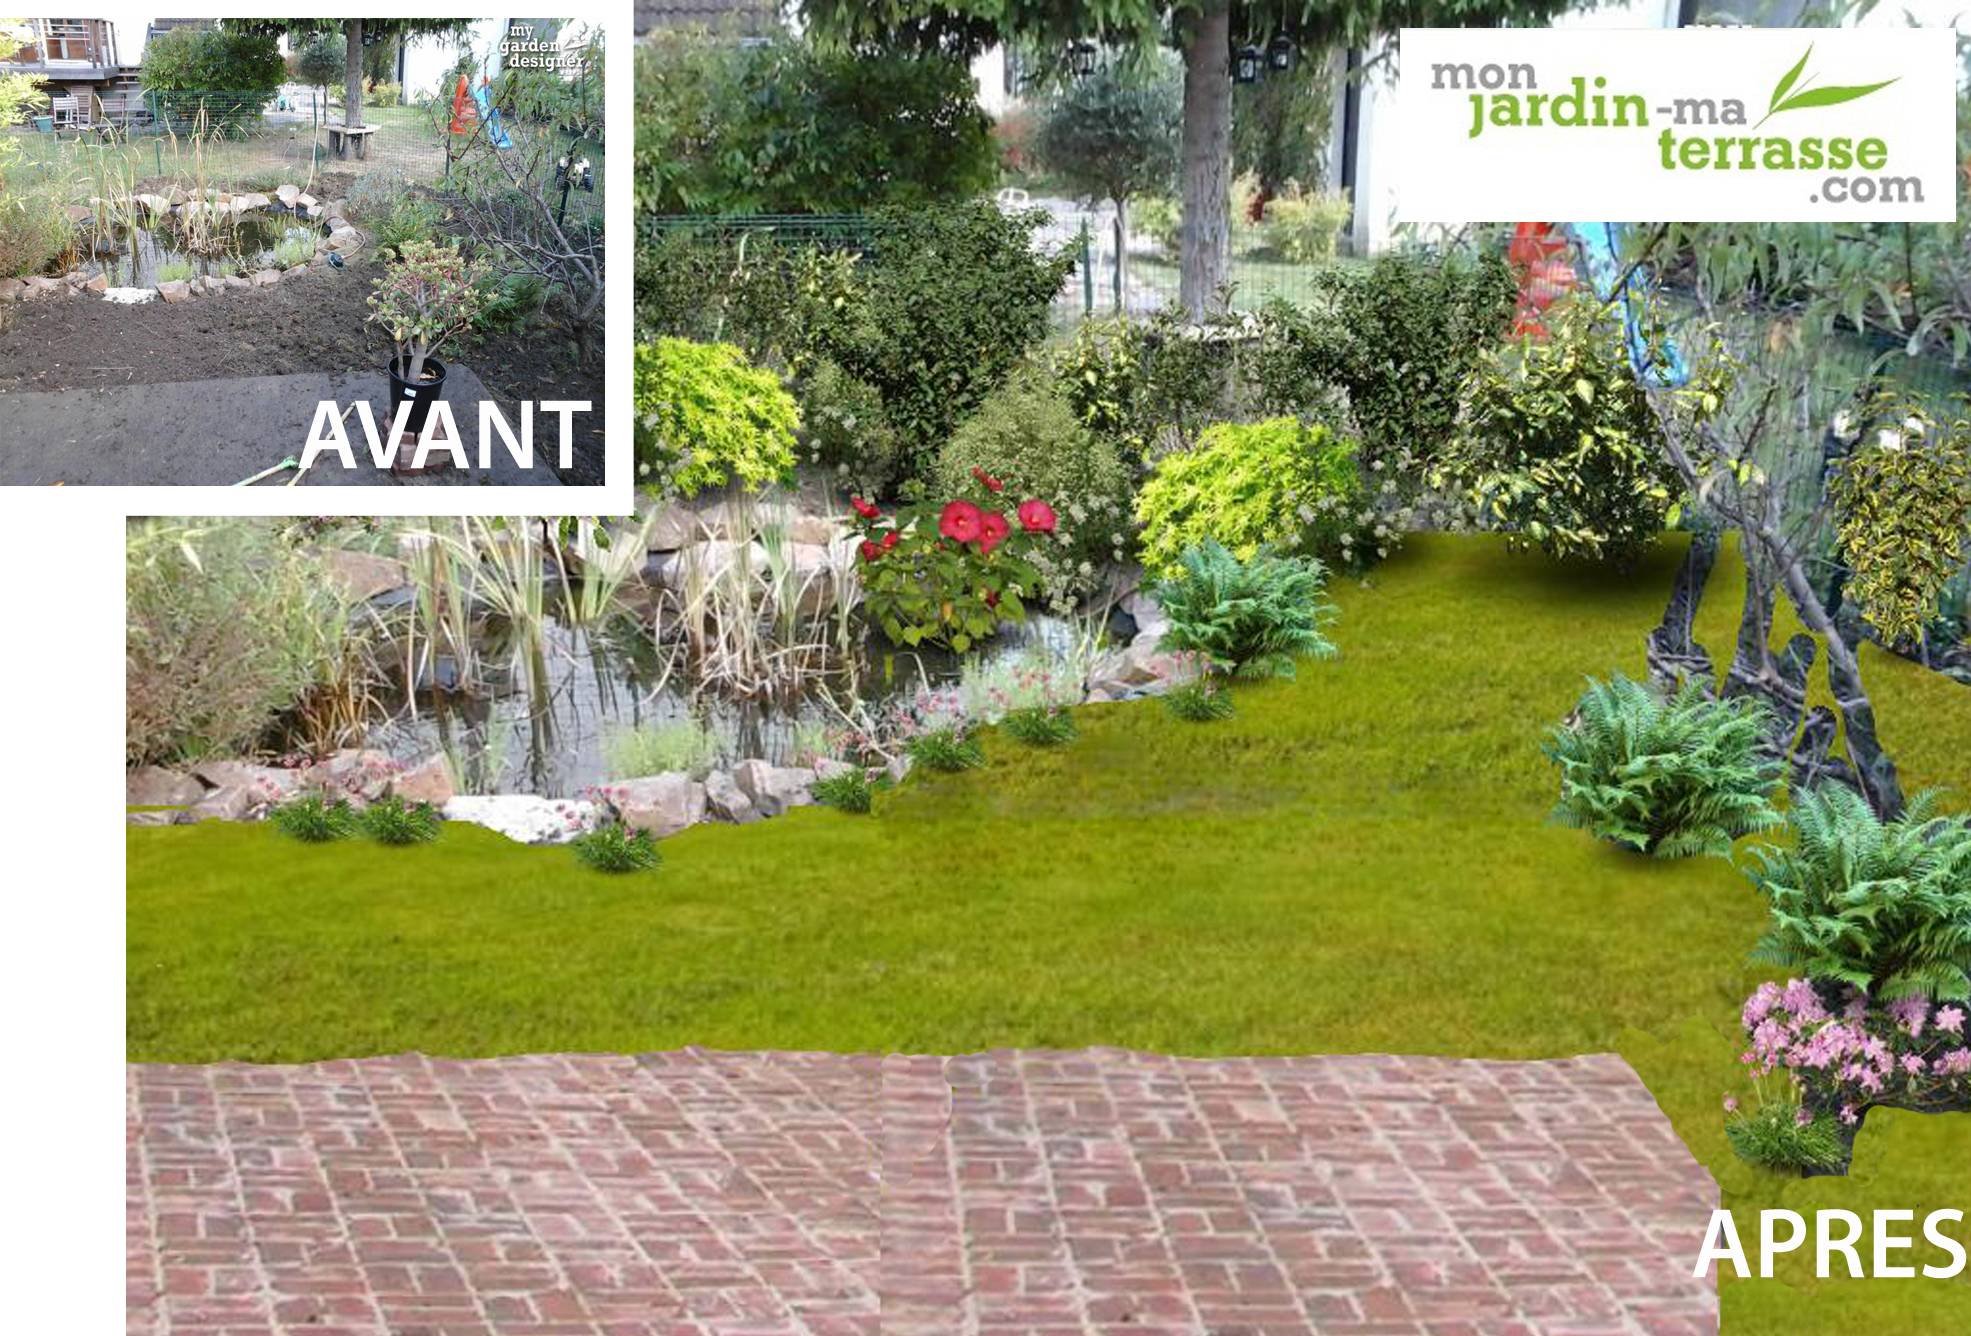 Am nager son bassin de jardin monjardin for Amenagement jardin agrement